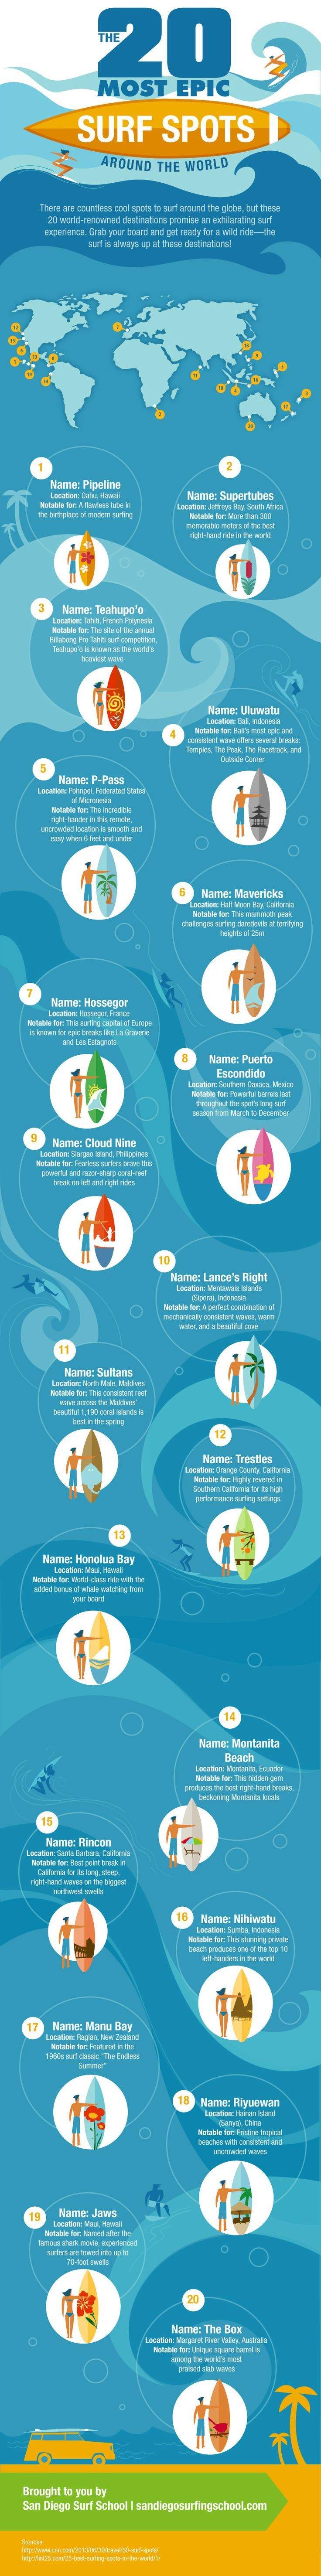 Best Places to Surf  - A Comprehensive Guide of the Best Places to Surf All Year Round  ♥ Follow the seasons.  Make MONEY and TIME yours so you can live a surfer's life. Try this Simple System That Absolutely Worked For Me:  https://successrx.leadpages.net/pt-surfing/  #surfing #surfinglife #infographic